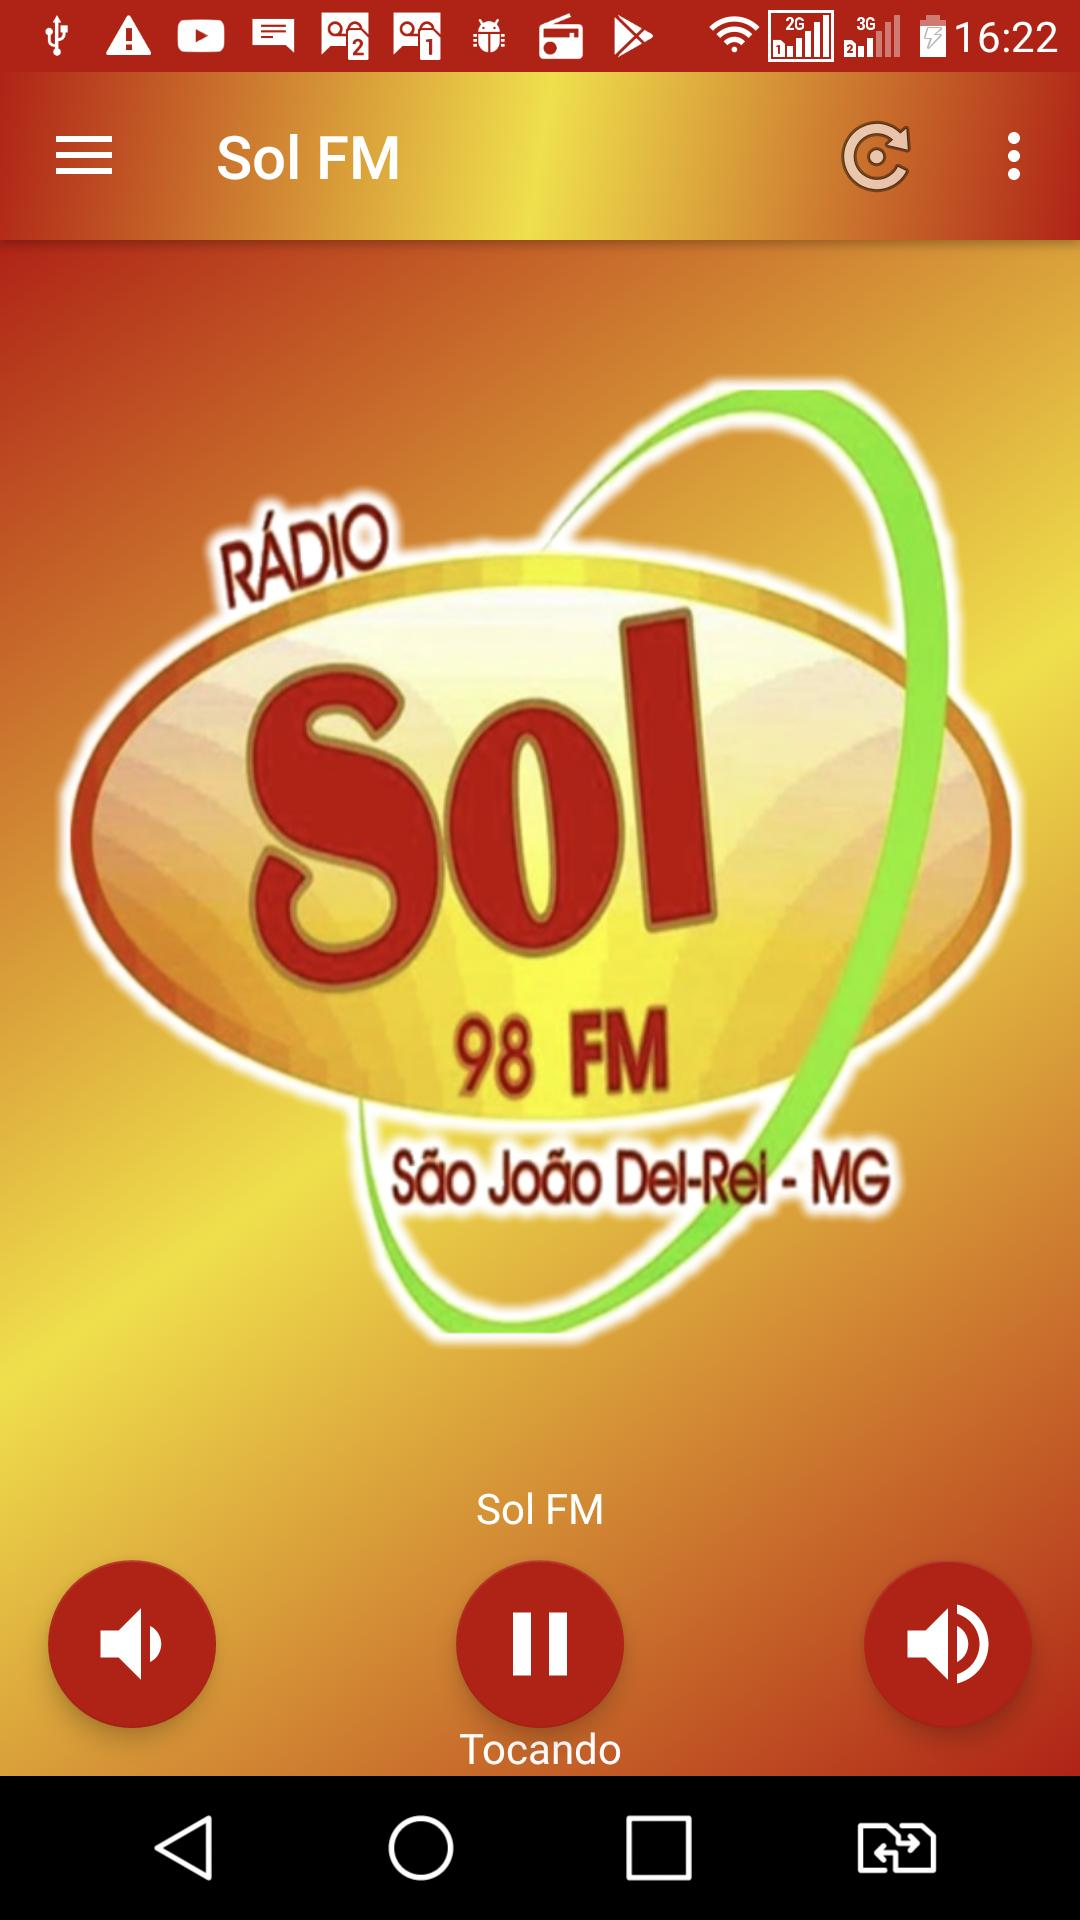 Sol FM for Android - APK Download